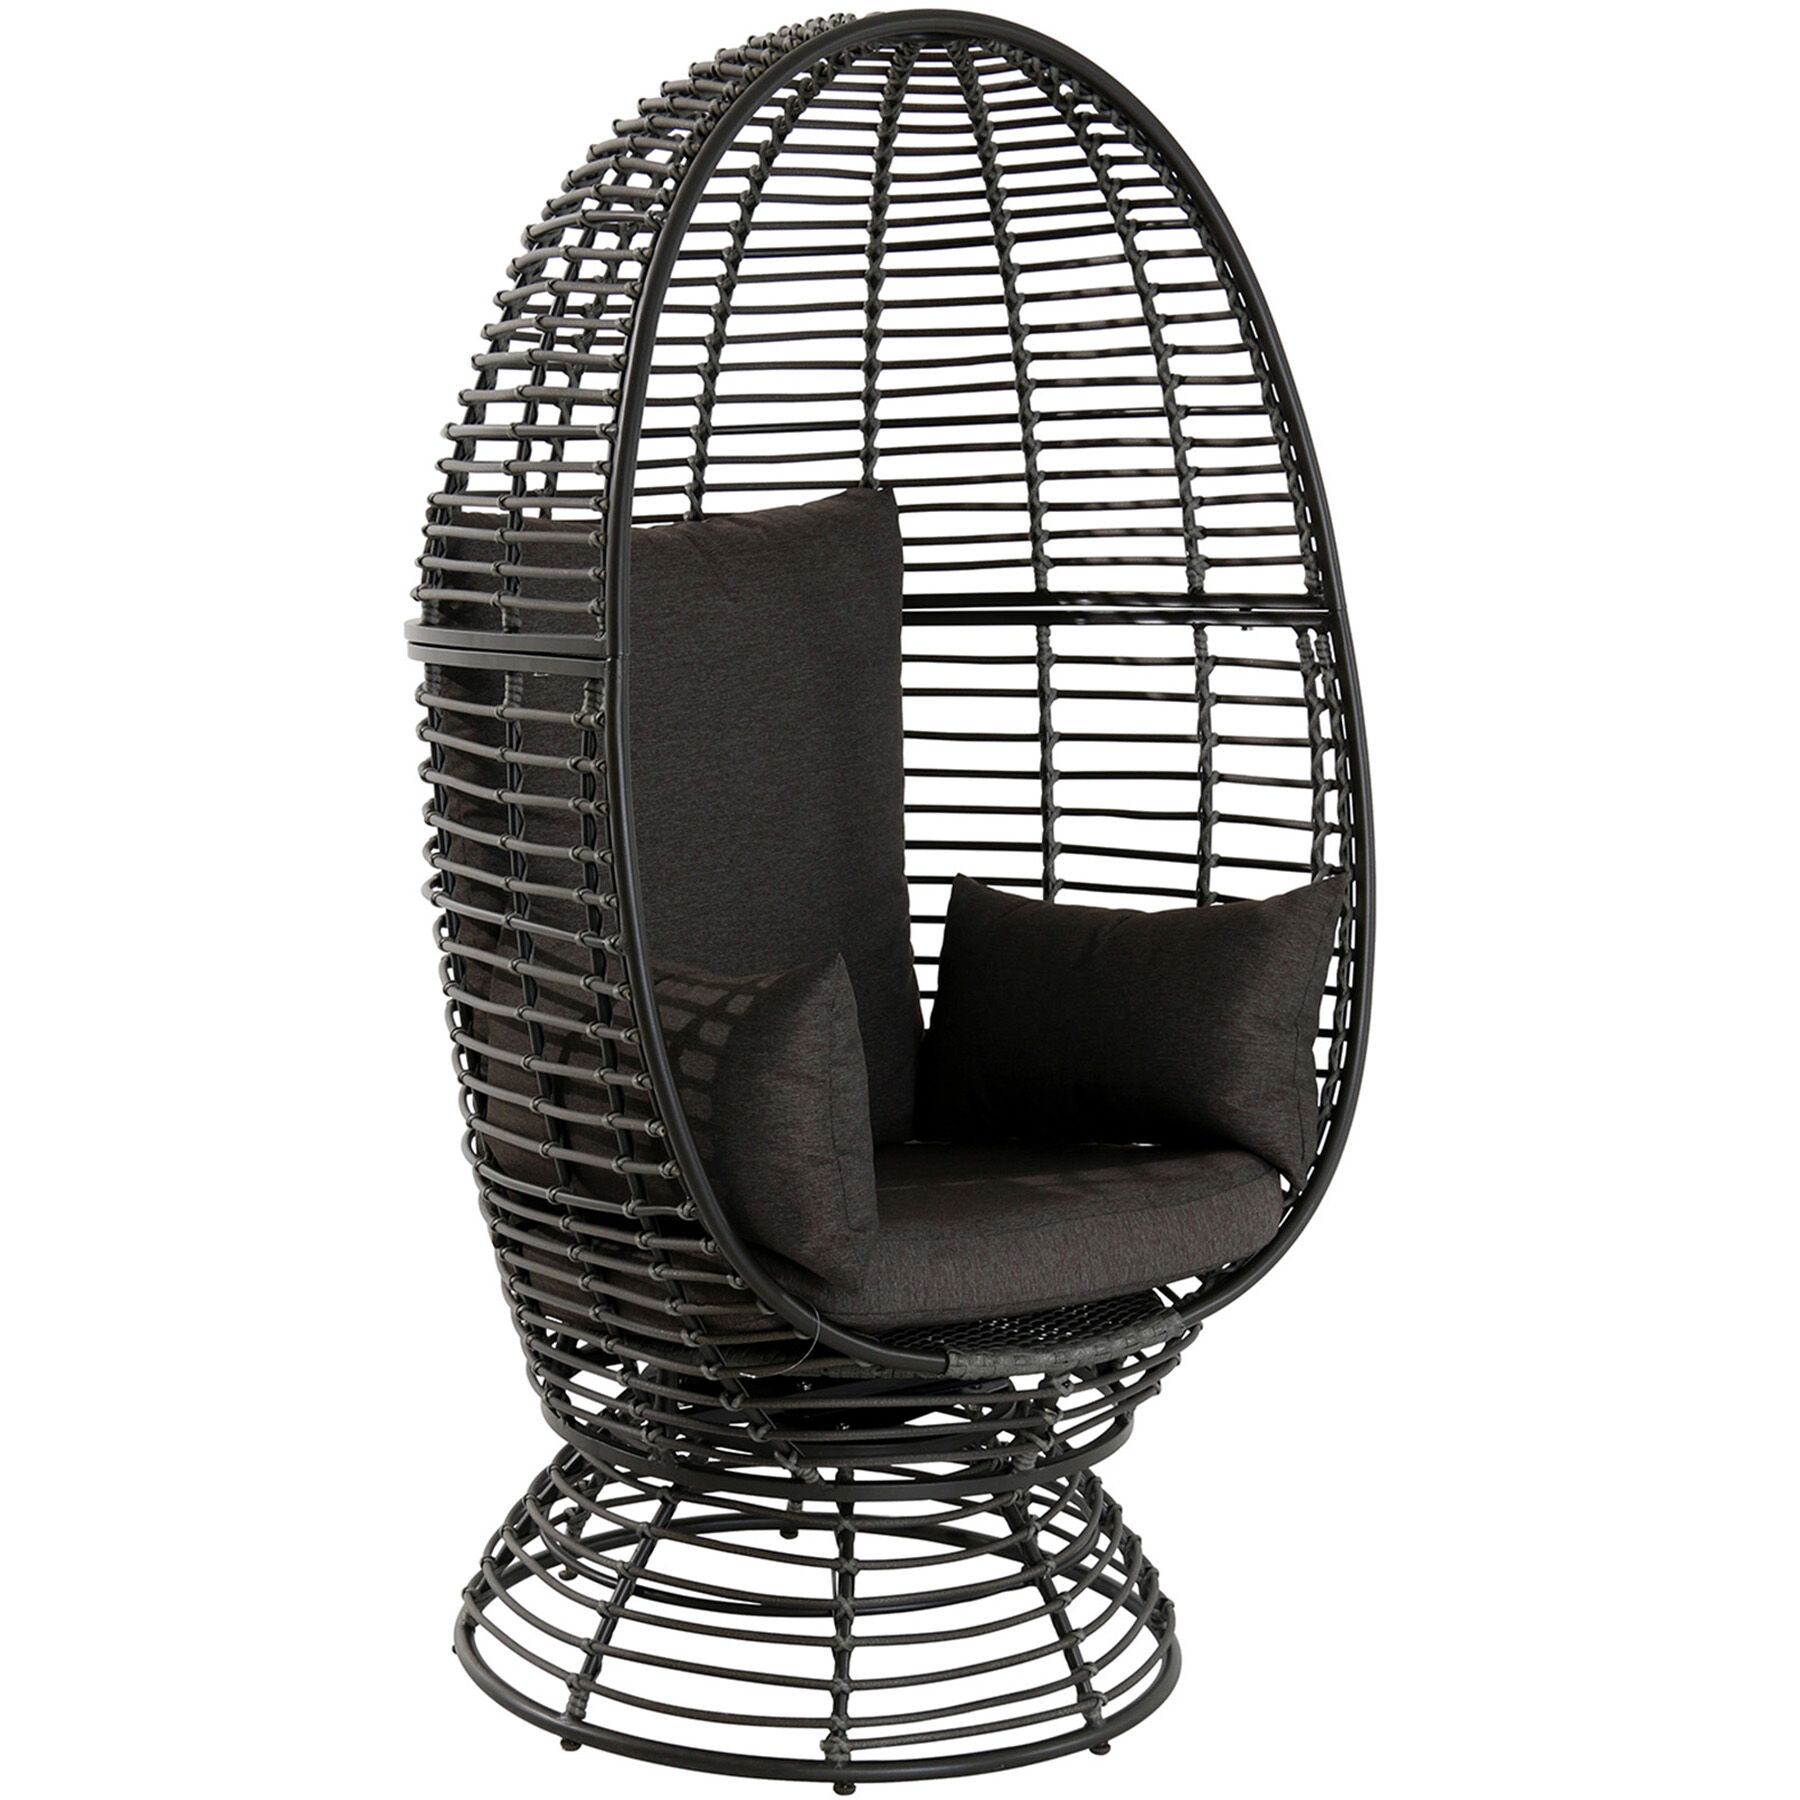 Wicker Egg Chairs For Sale Foster Wicker Swivel Egg Chair Brown At Home